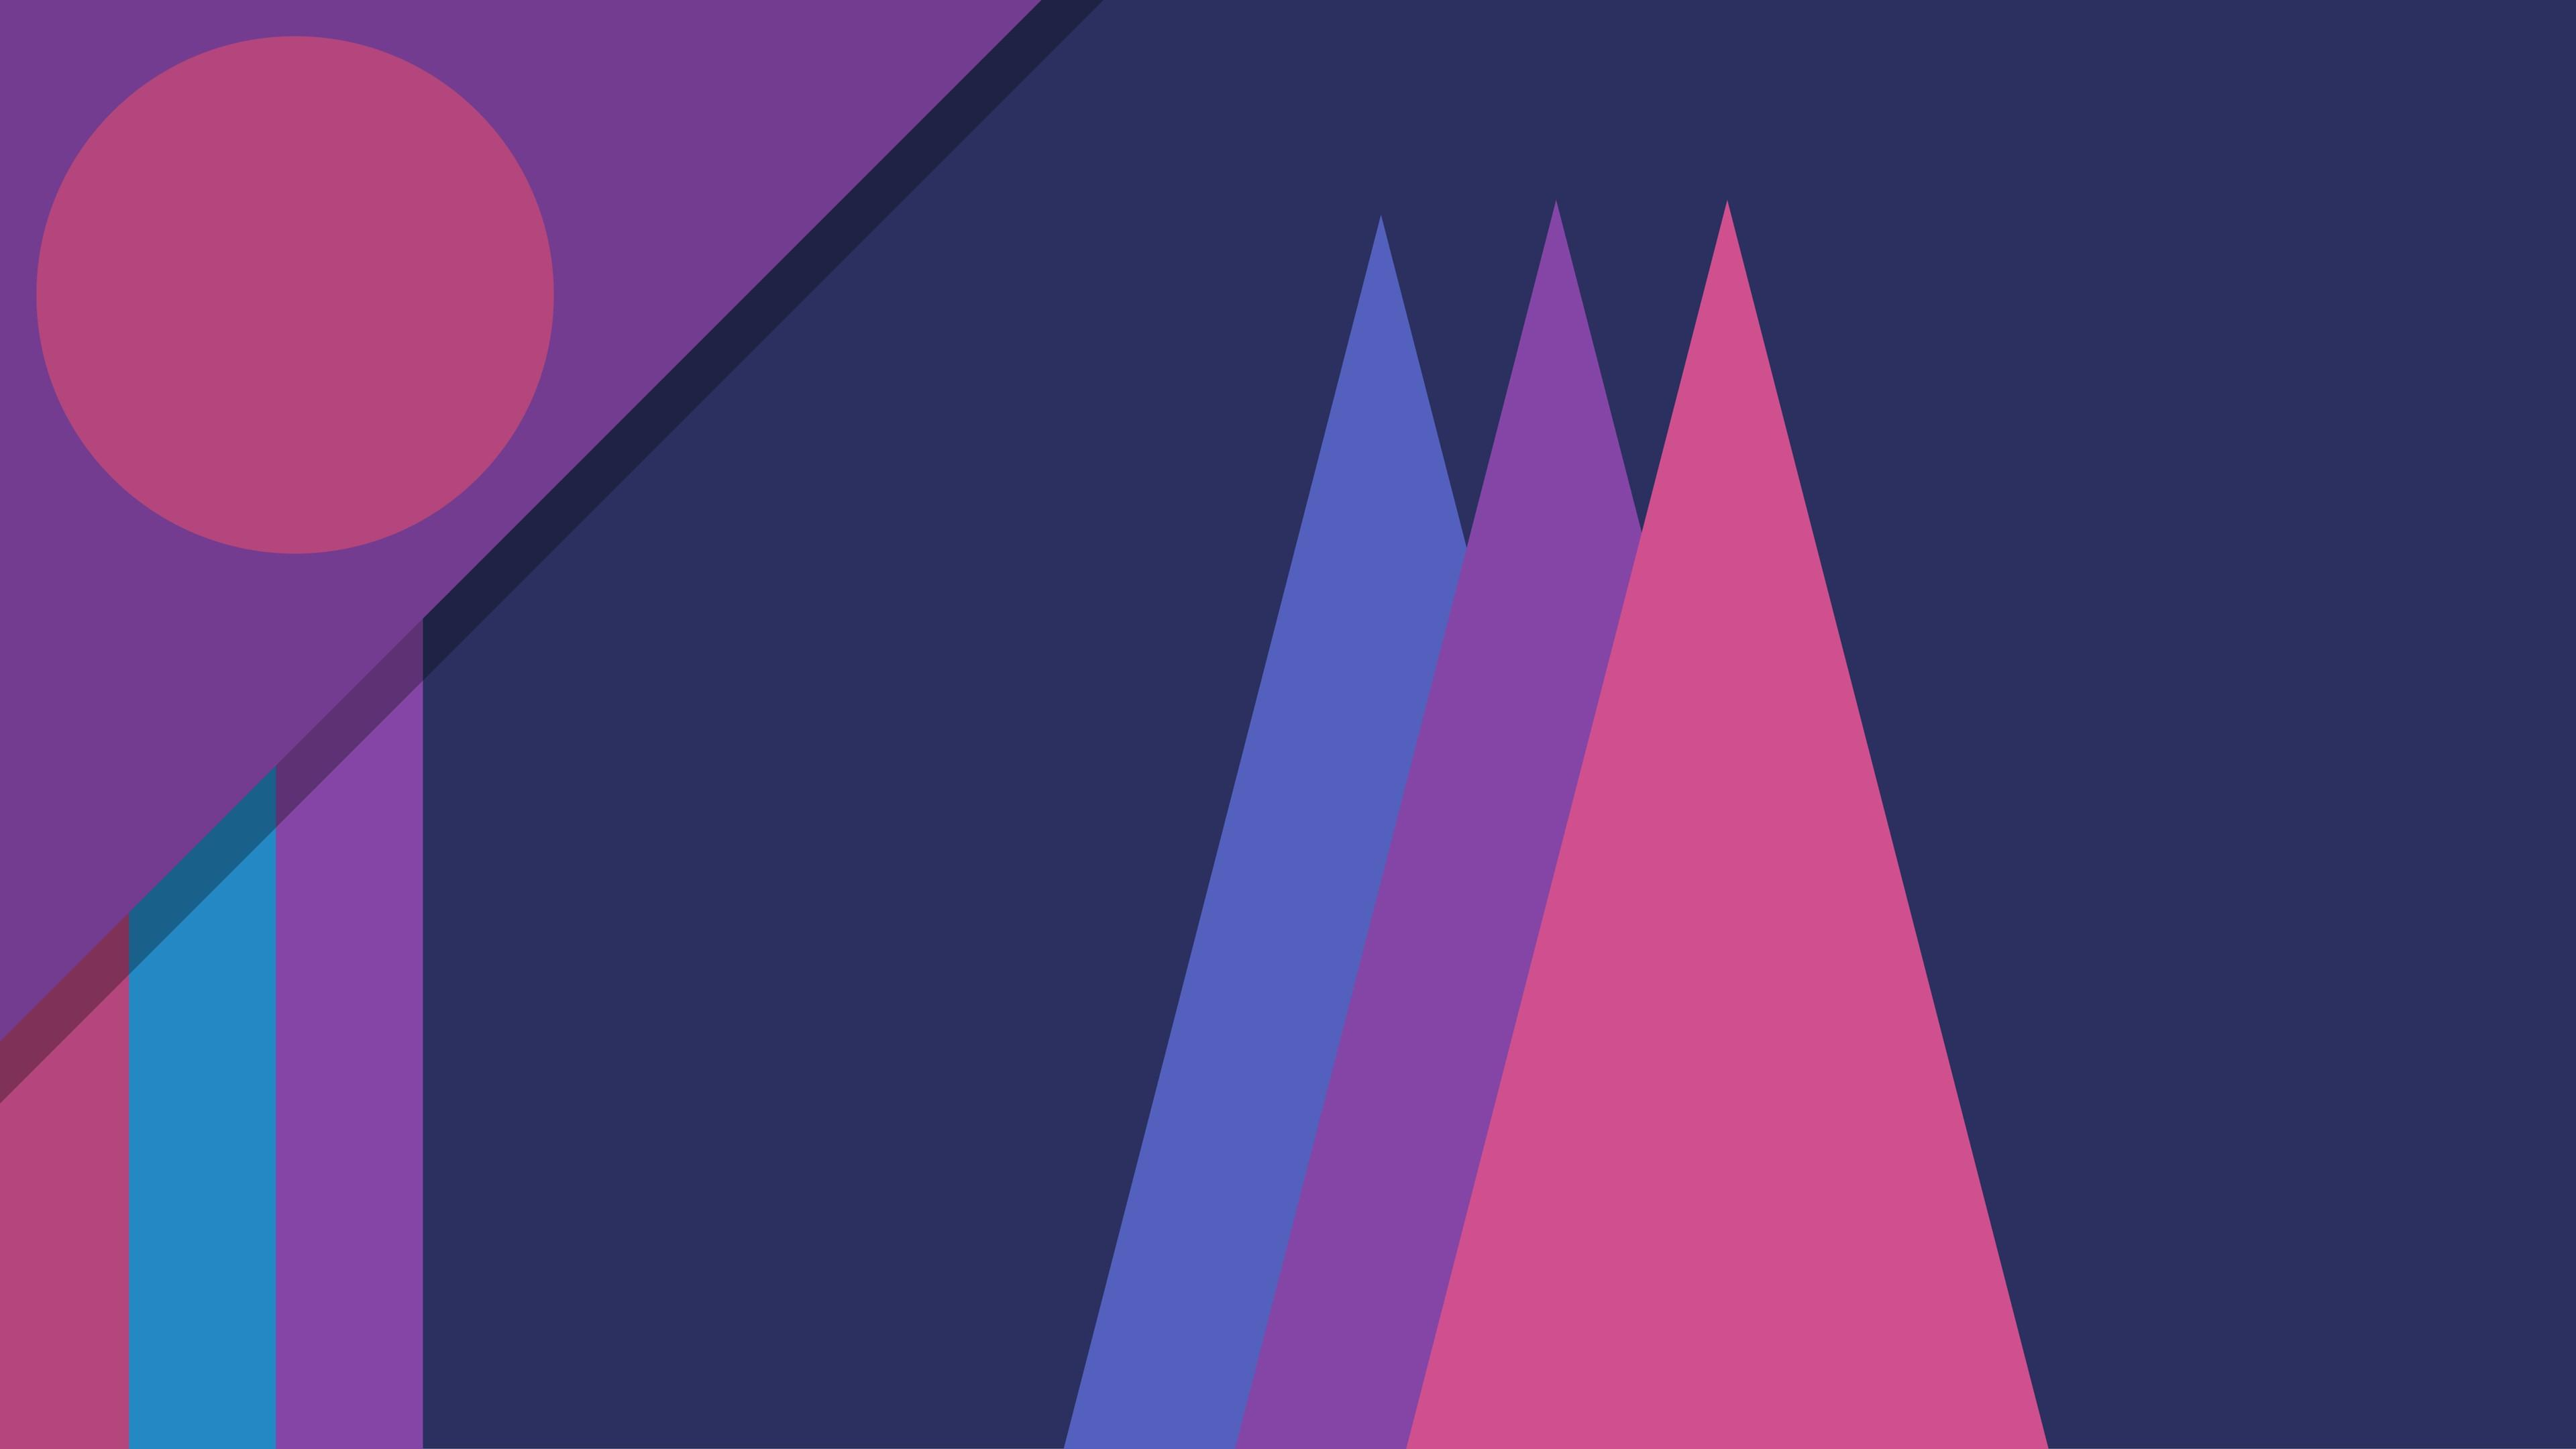 Material design art wallpaper